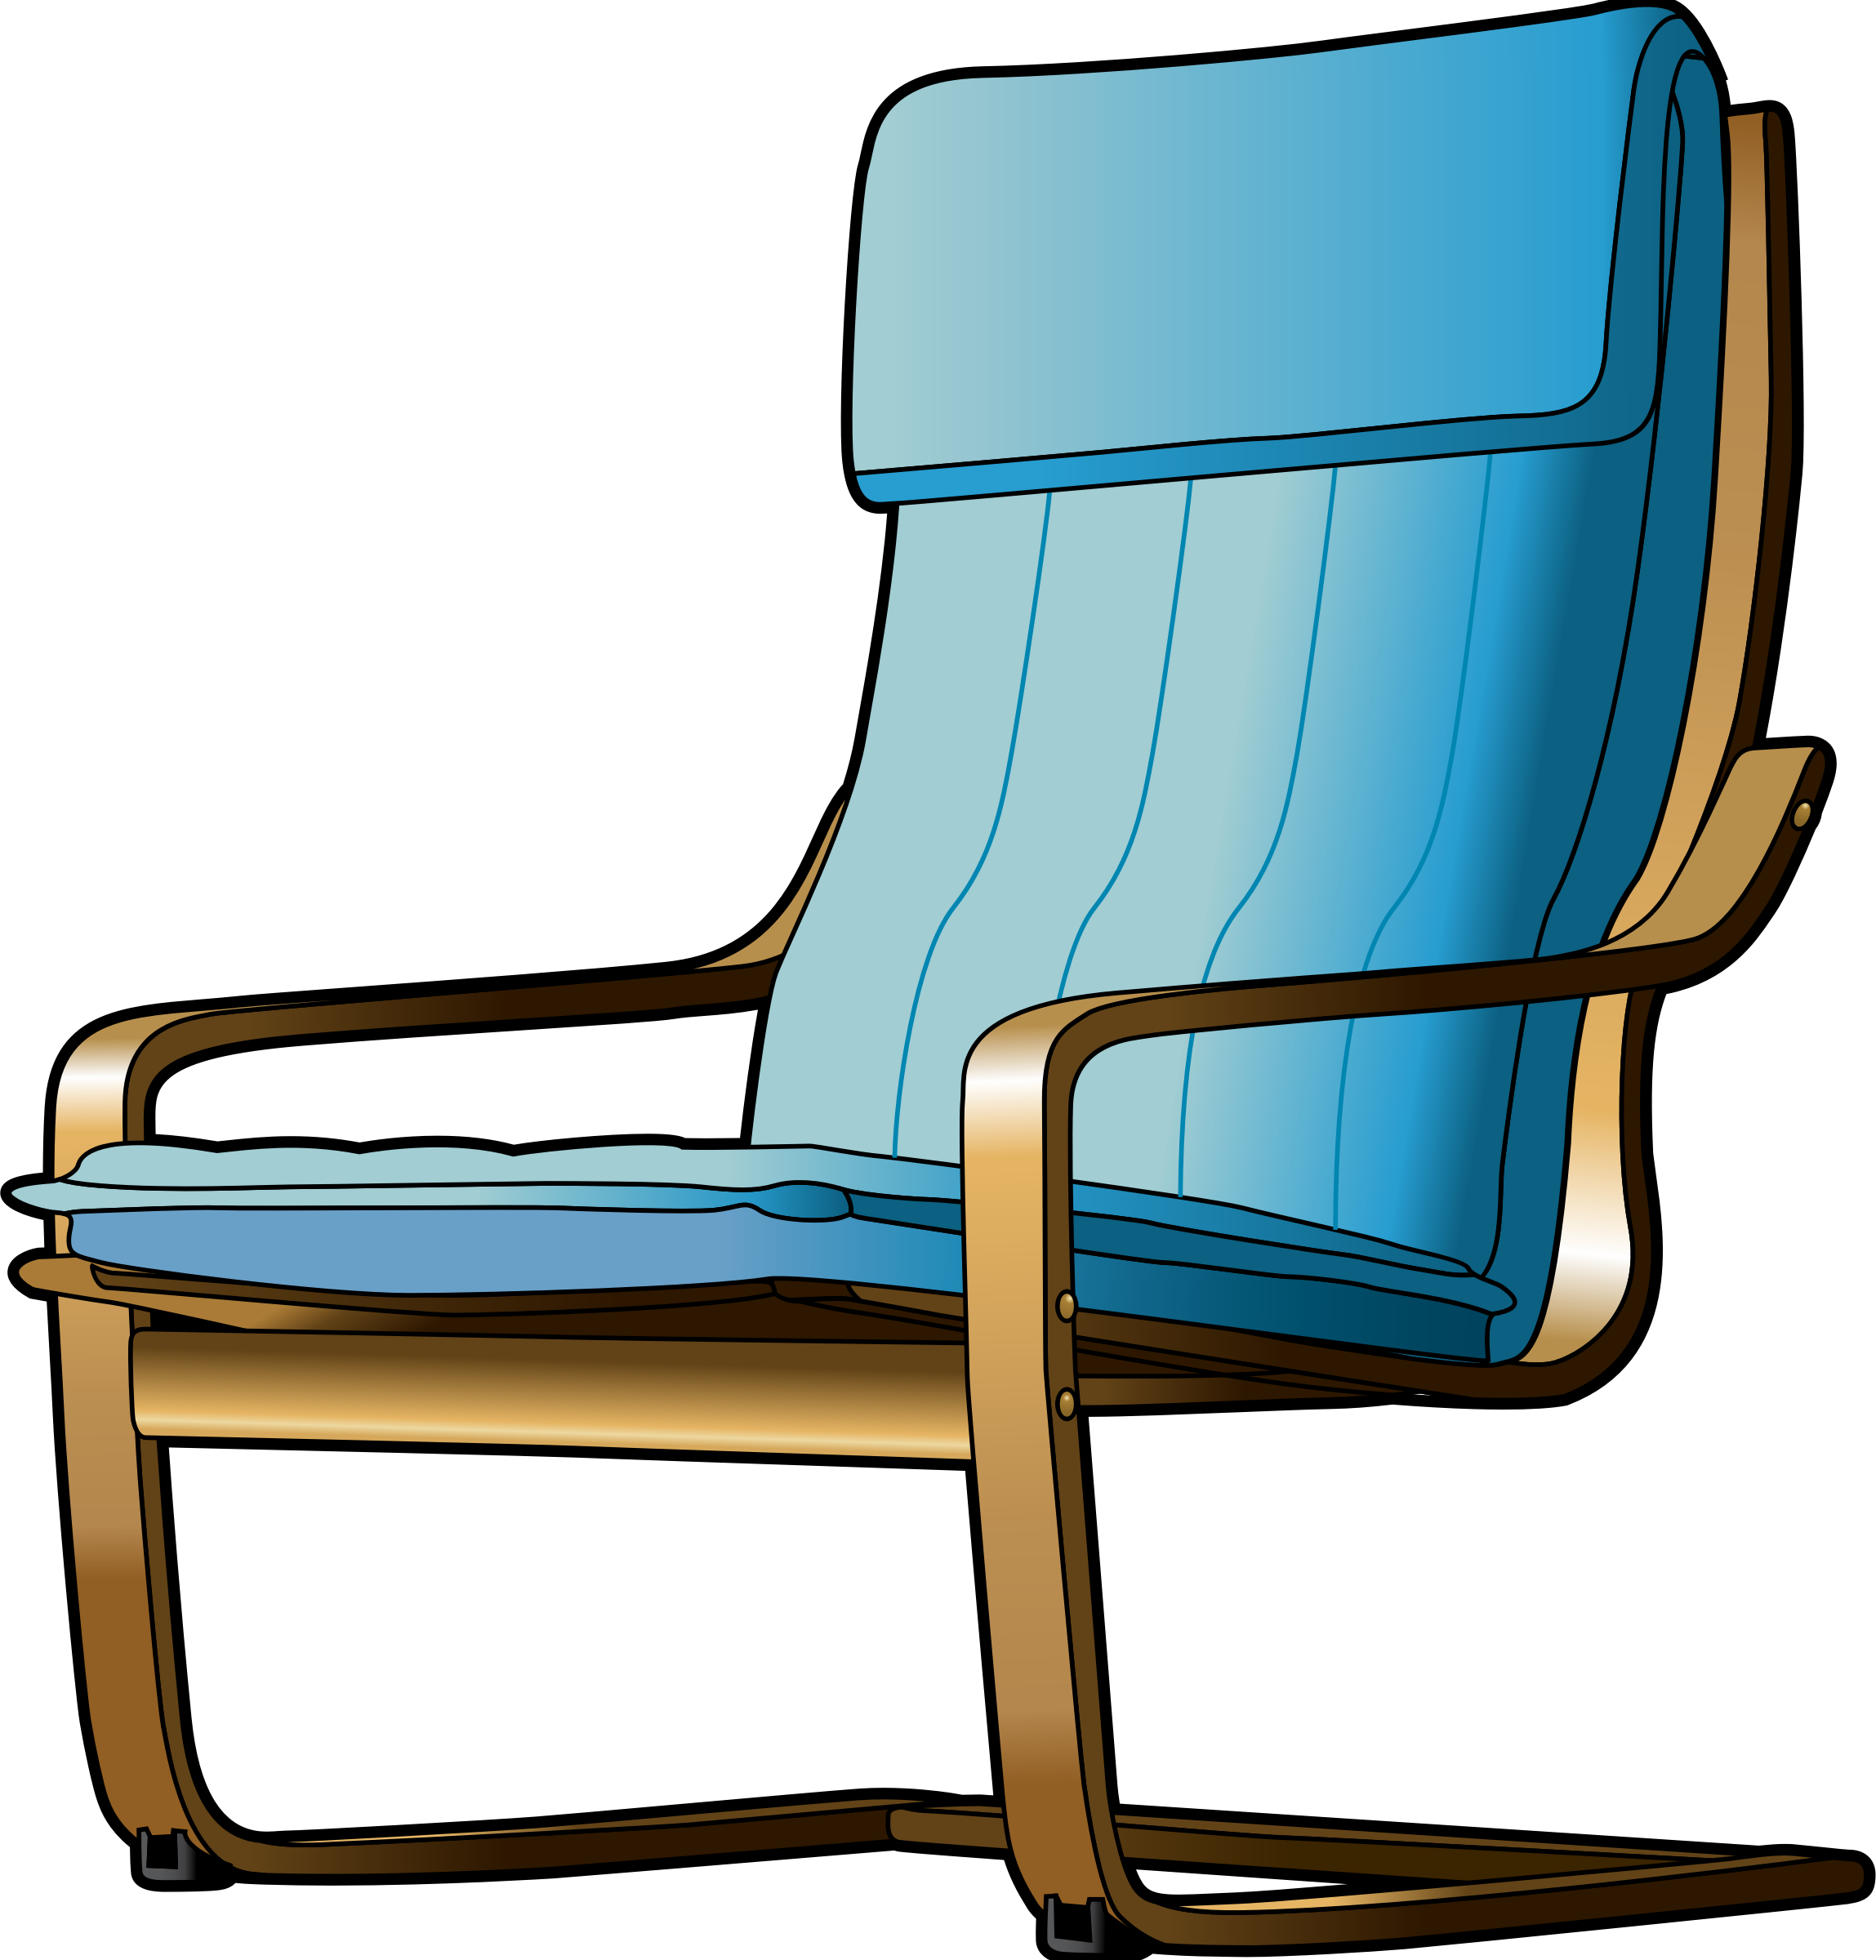 Armchair by Muga